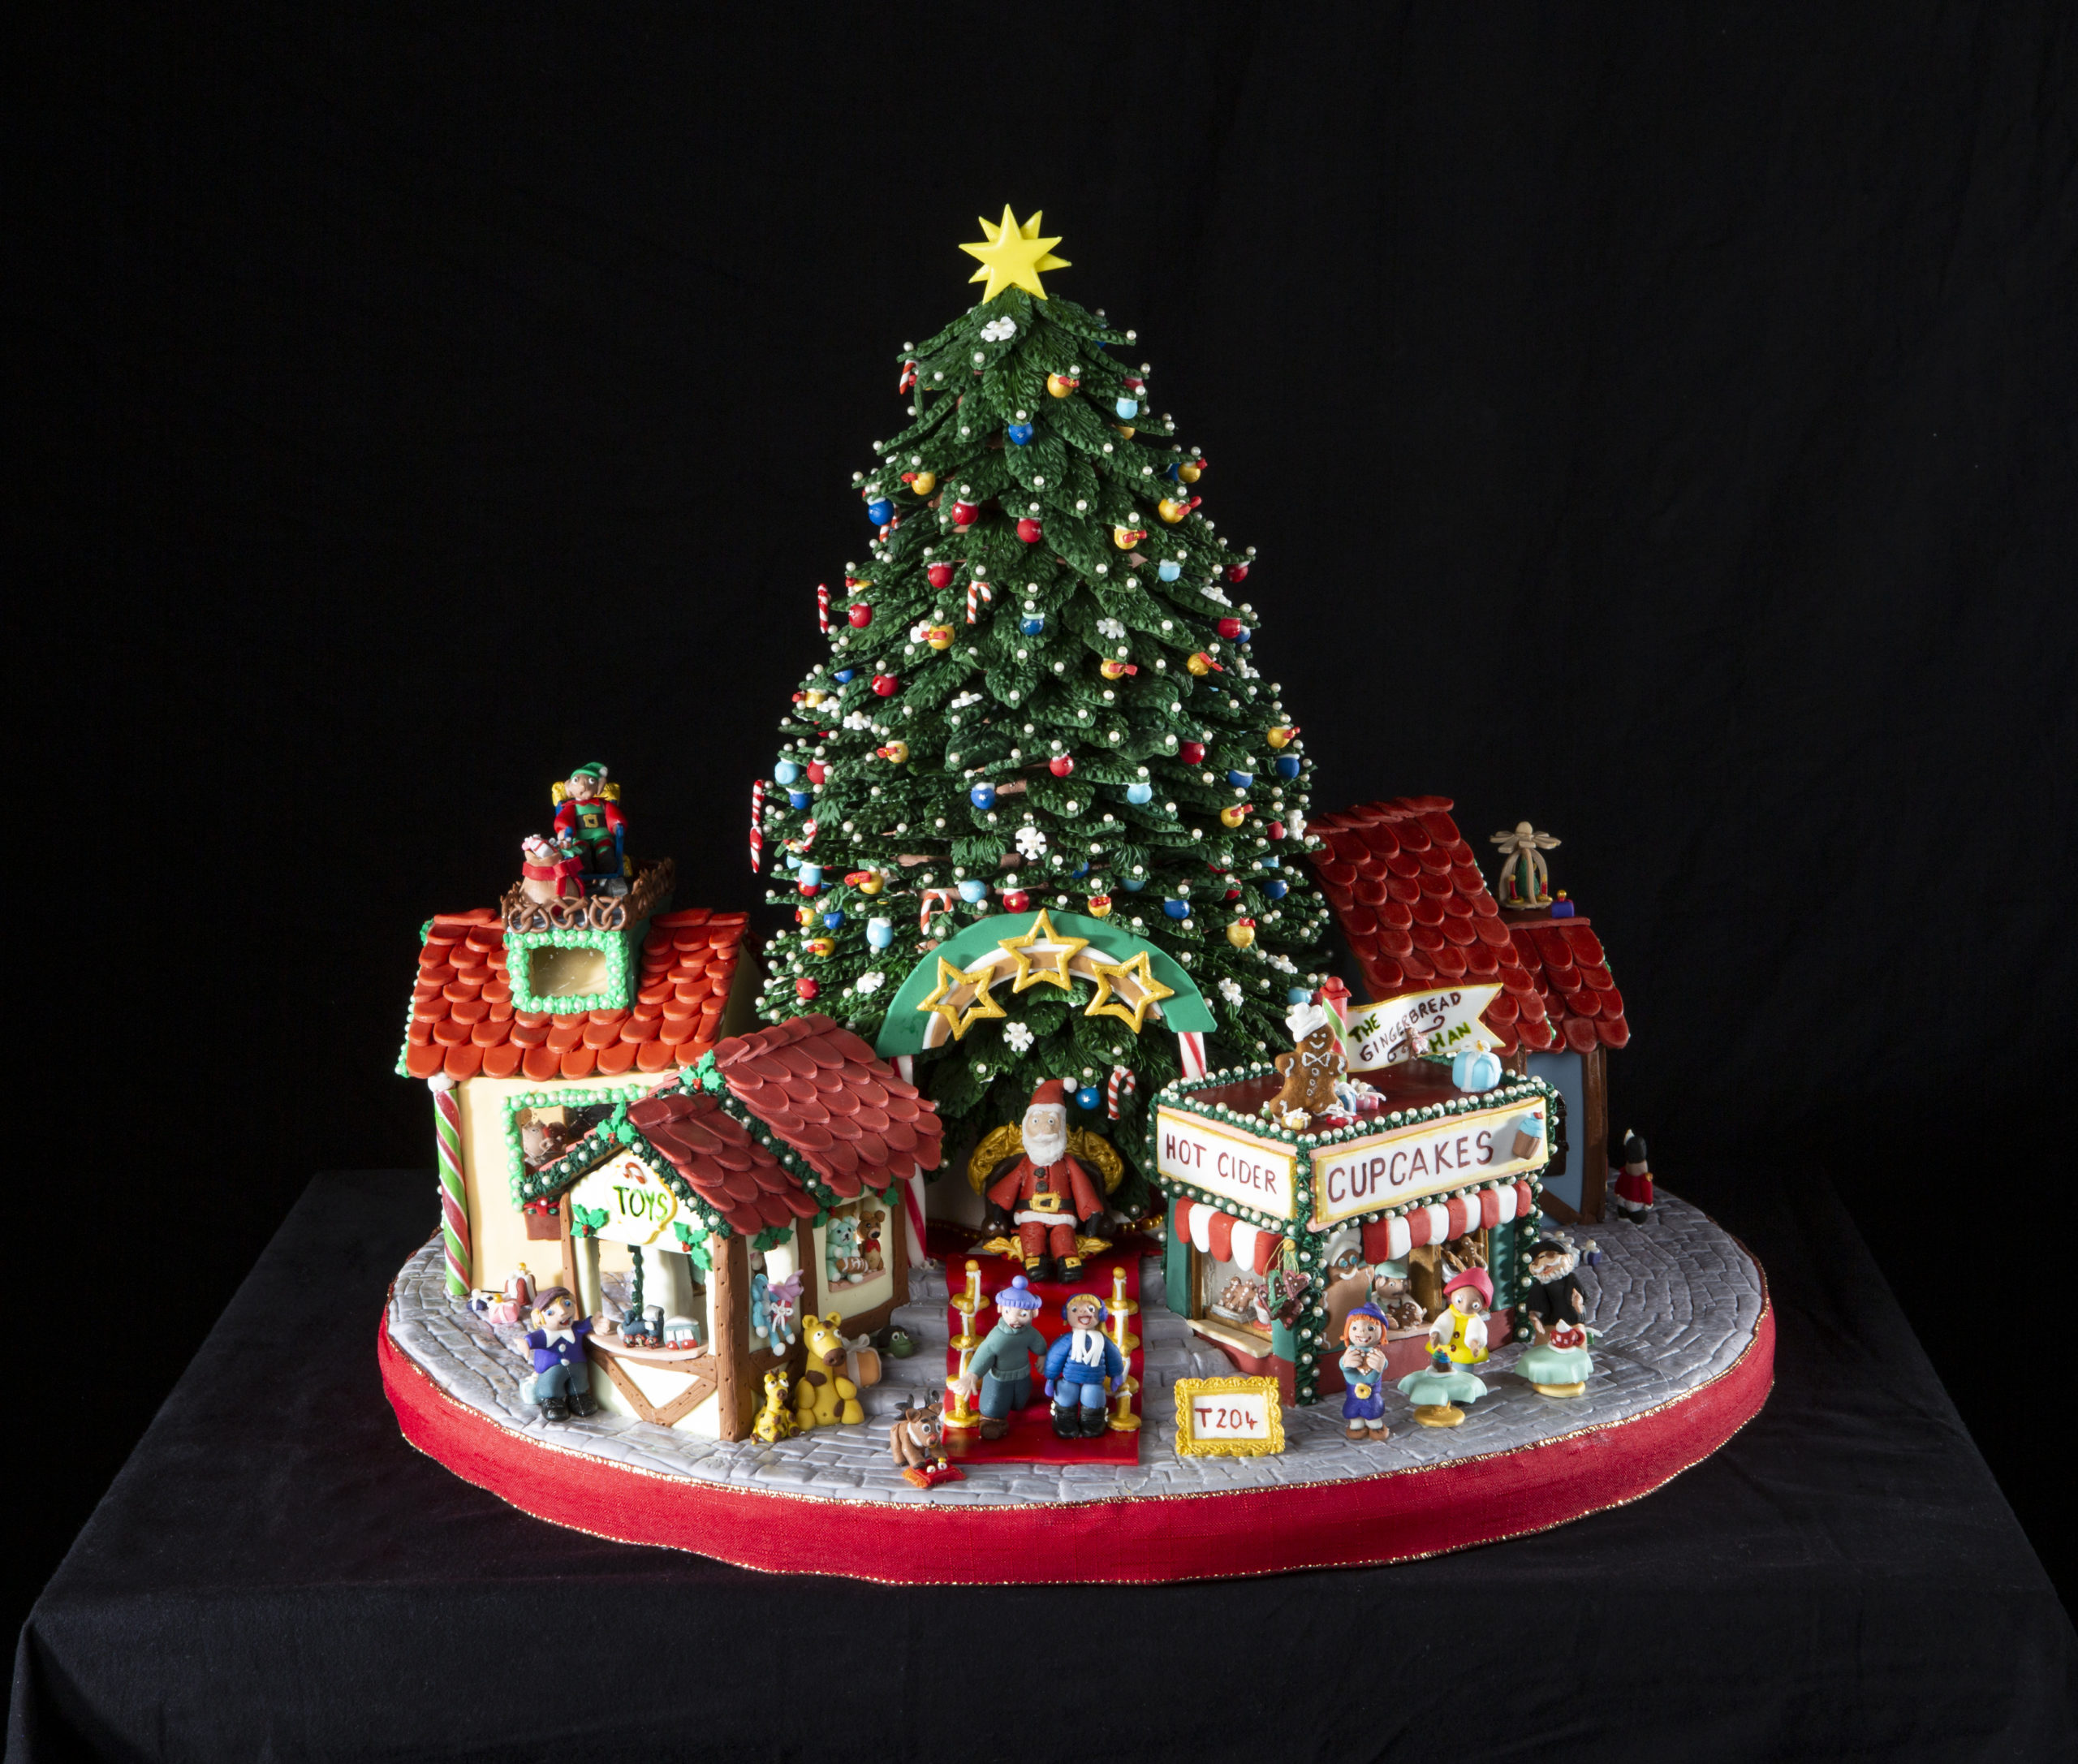 A gingerbread display with a Christmas tree and several buildings.